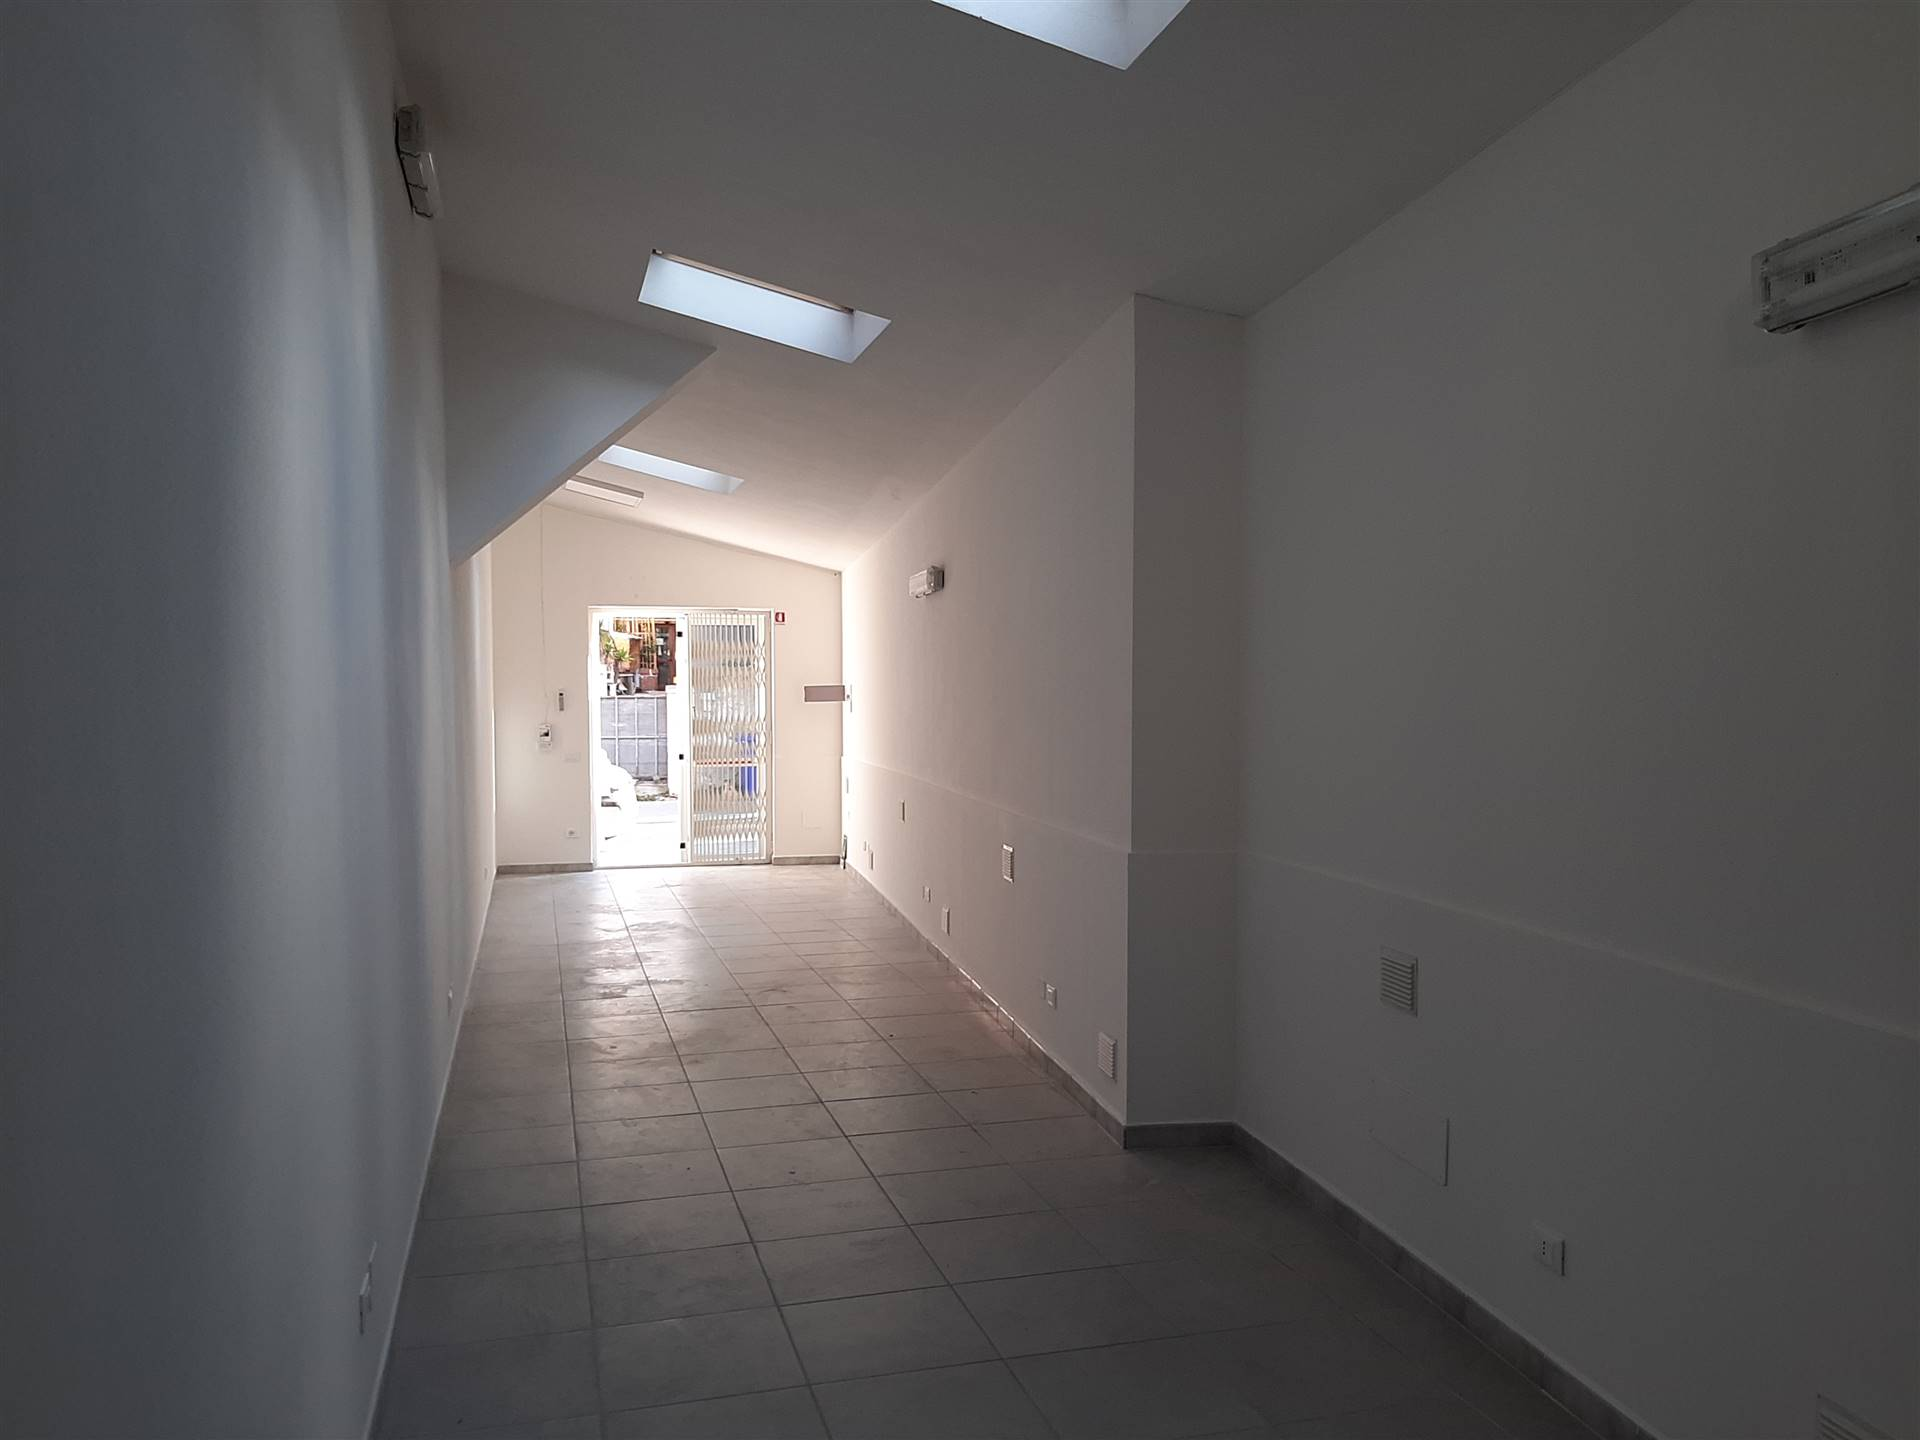 ASCIANO, SAN GIULIANO TERME, Office for rent of 85 Sq. mt., Energetic class: G, Epi: 6,8 kwh/m3 year, composed by: 2 Rooms, 1 Bathroom, Price: € 500